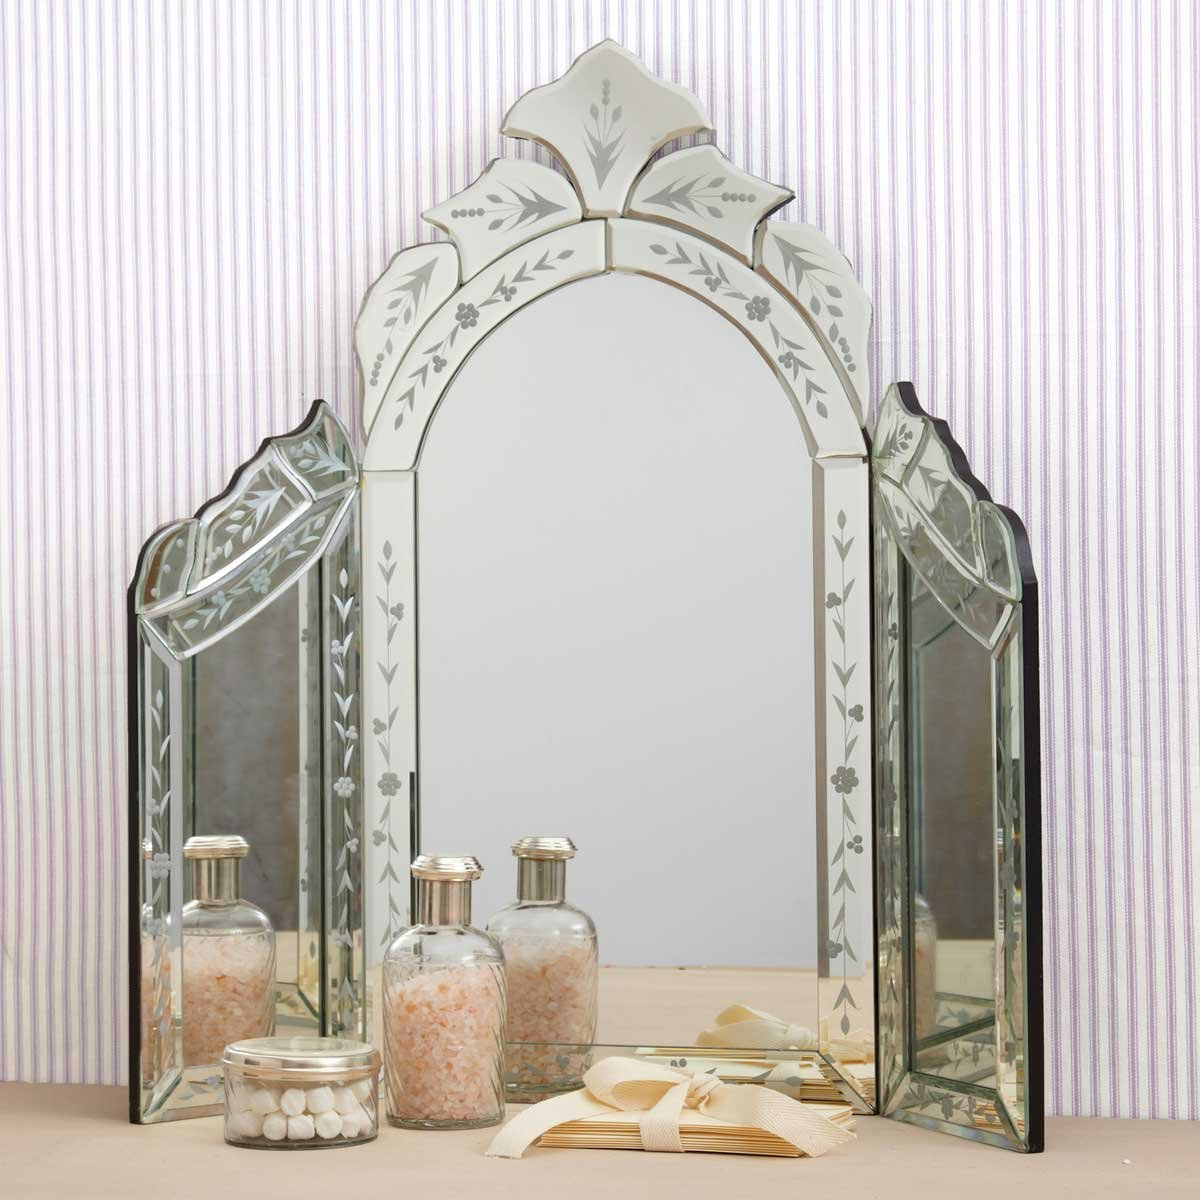 Recent Agreeable Antique Full Length Tri Fold Mirror Gold Frames With Regard To Tri Fold Bathroom Wall Mirrors (Gallery 17 of 20)